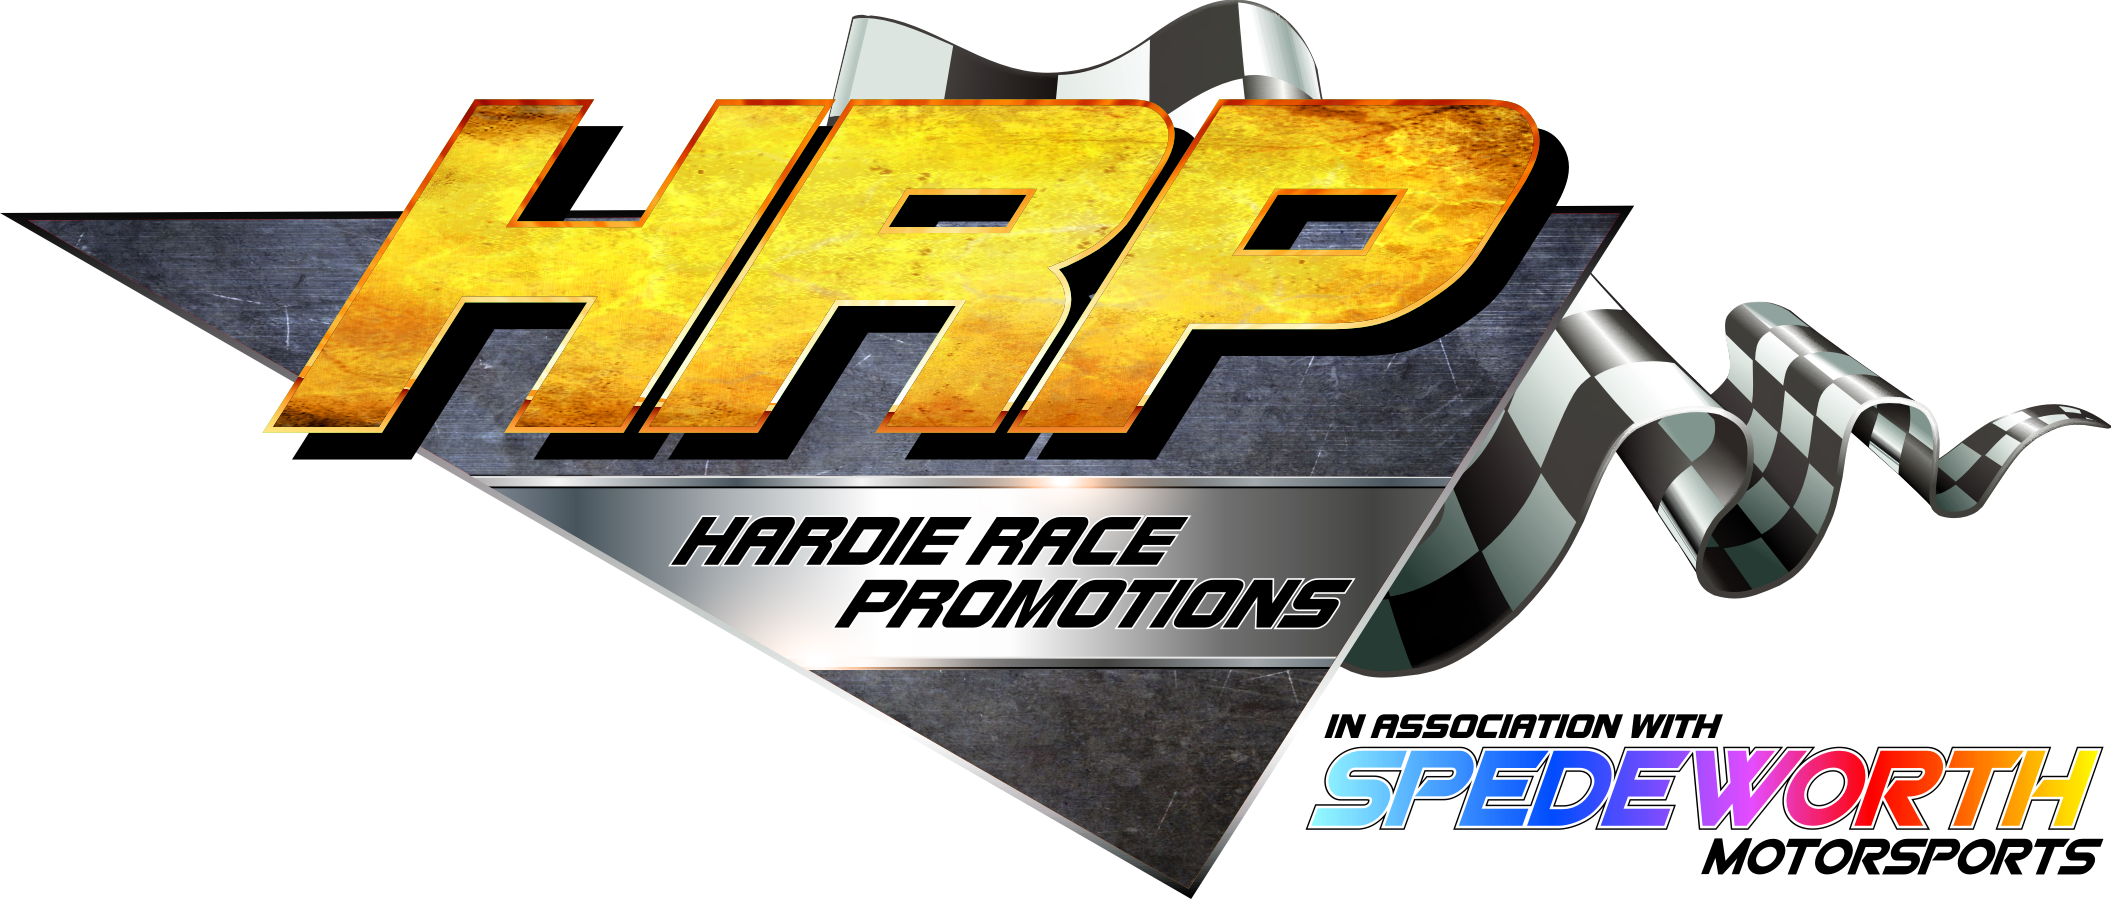 Hardie Race Promotions - Scotland's Premier Stock Car Racing Facility